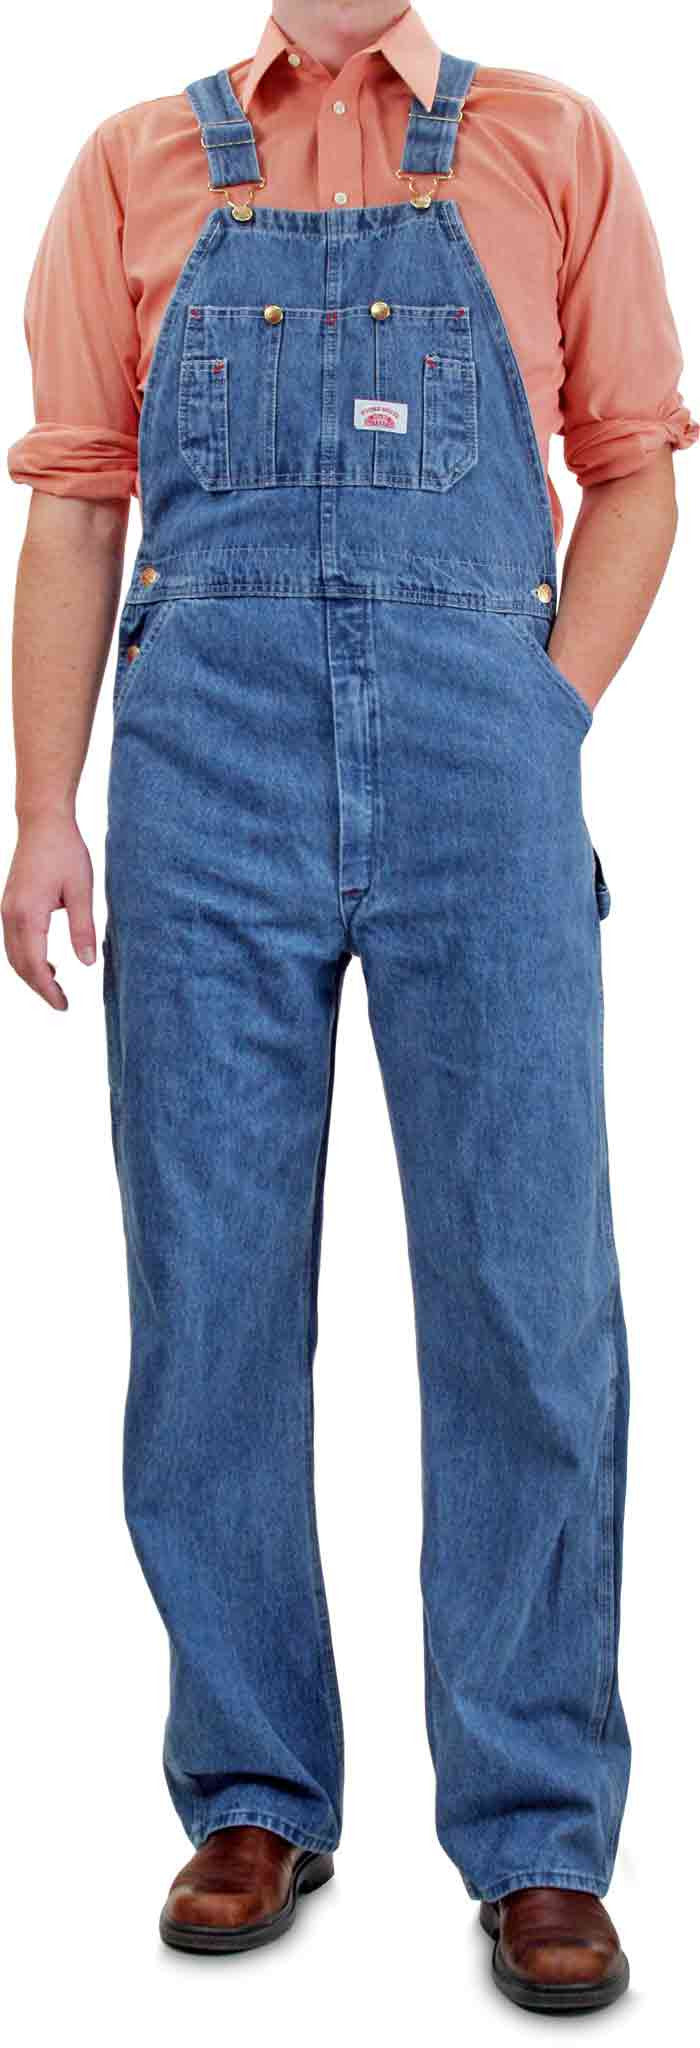 b56c148eca 699 Round House Made in USA Stone Washed Blue Denim Overalls – Round ...